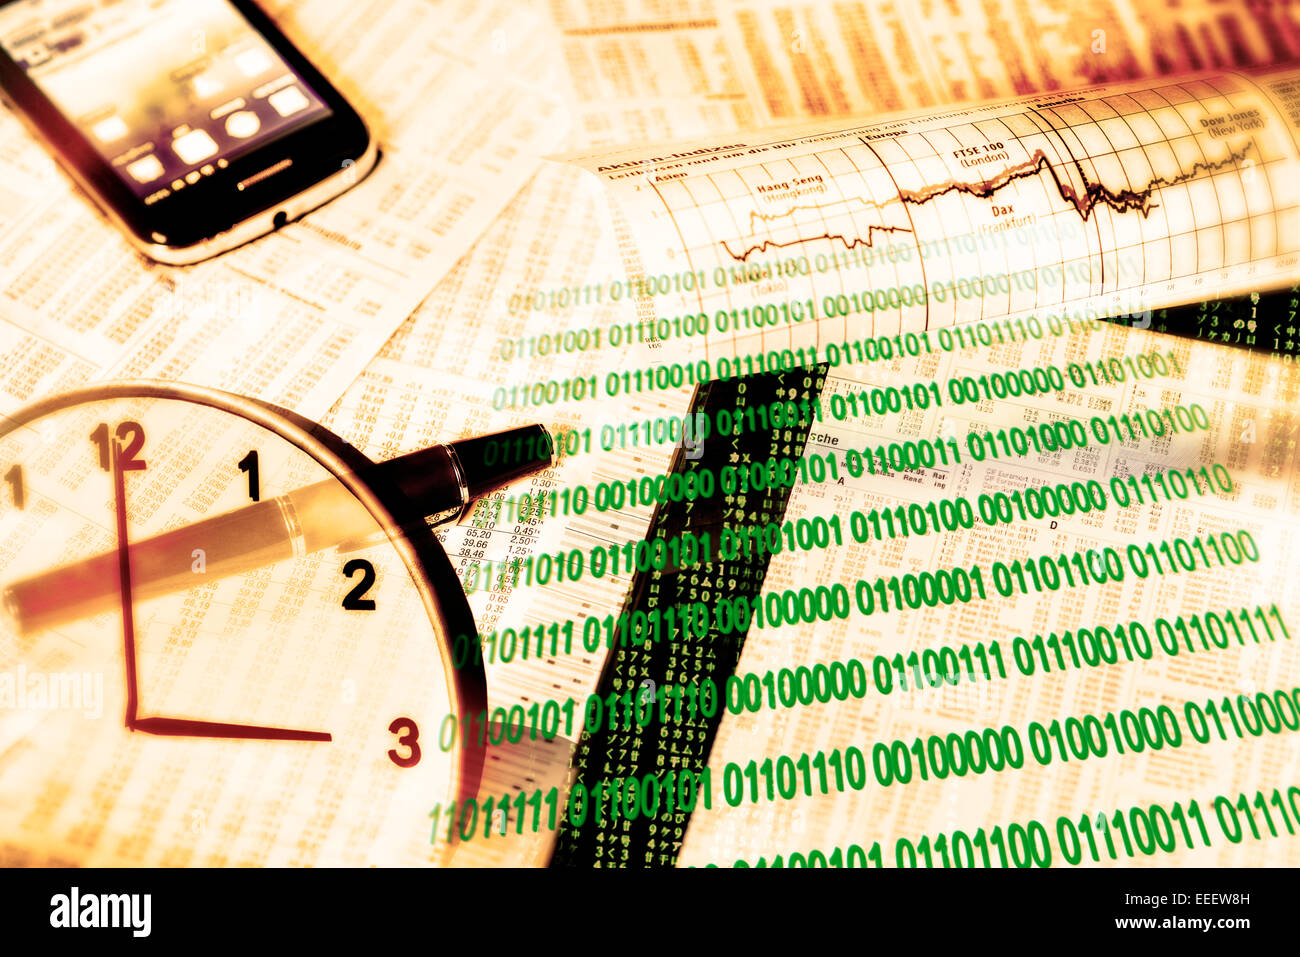 Exchange rate tables, stock indices, binary numbers, smartphone and a clock as a symbol of the modern computerized - Stock Image